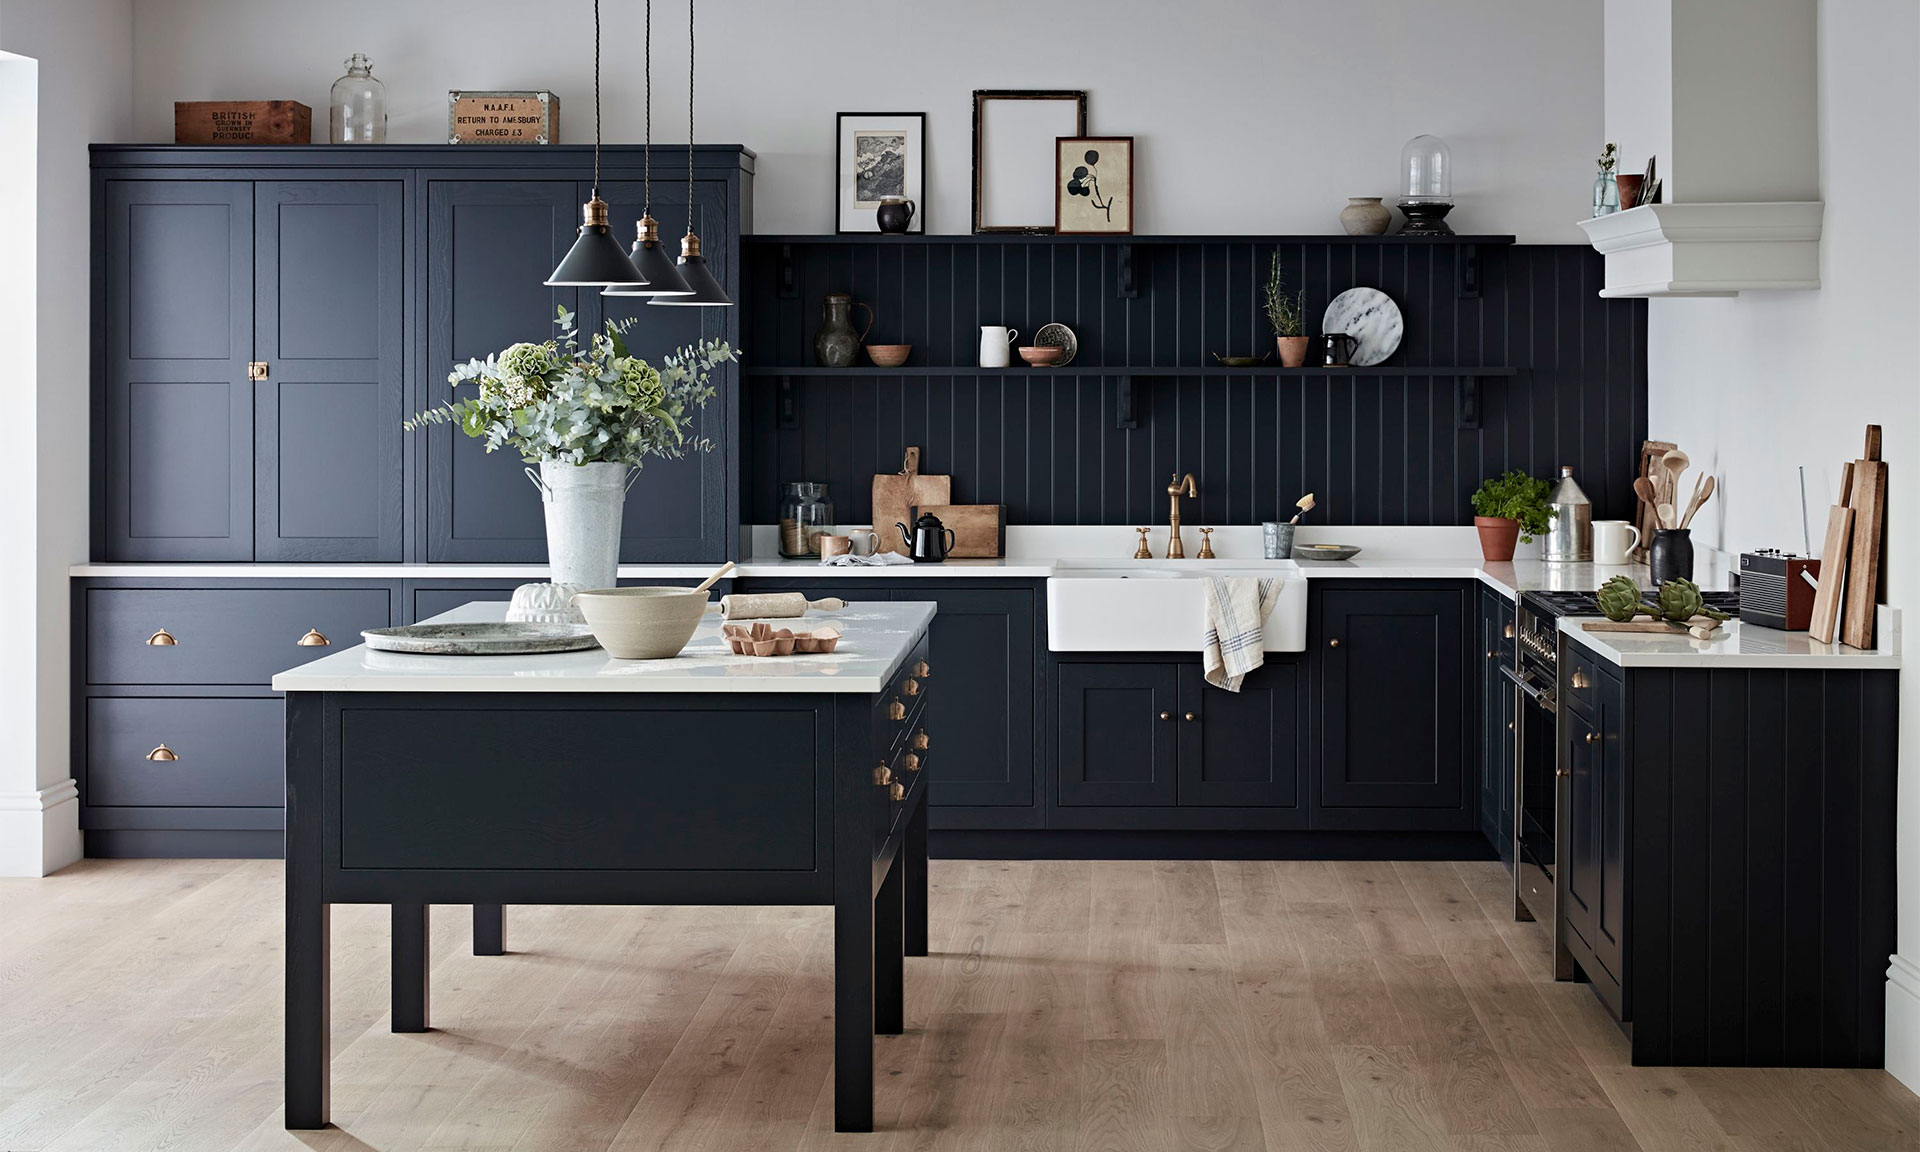 10 Kitchen Trends To Try In 2020 Which News